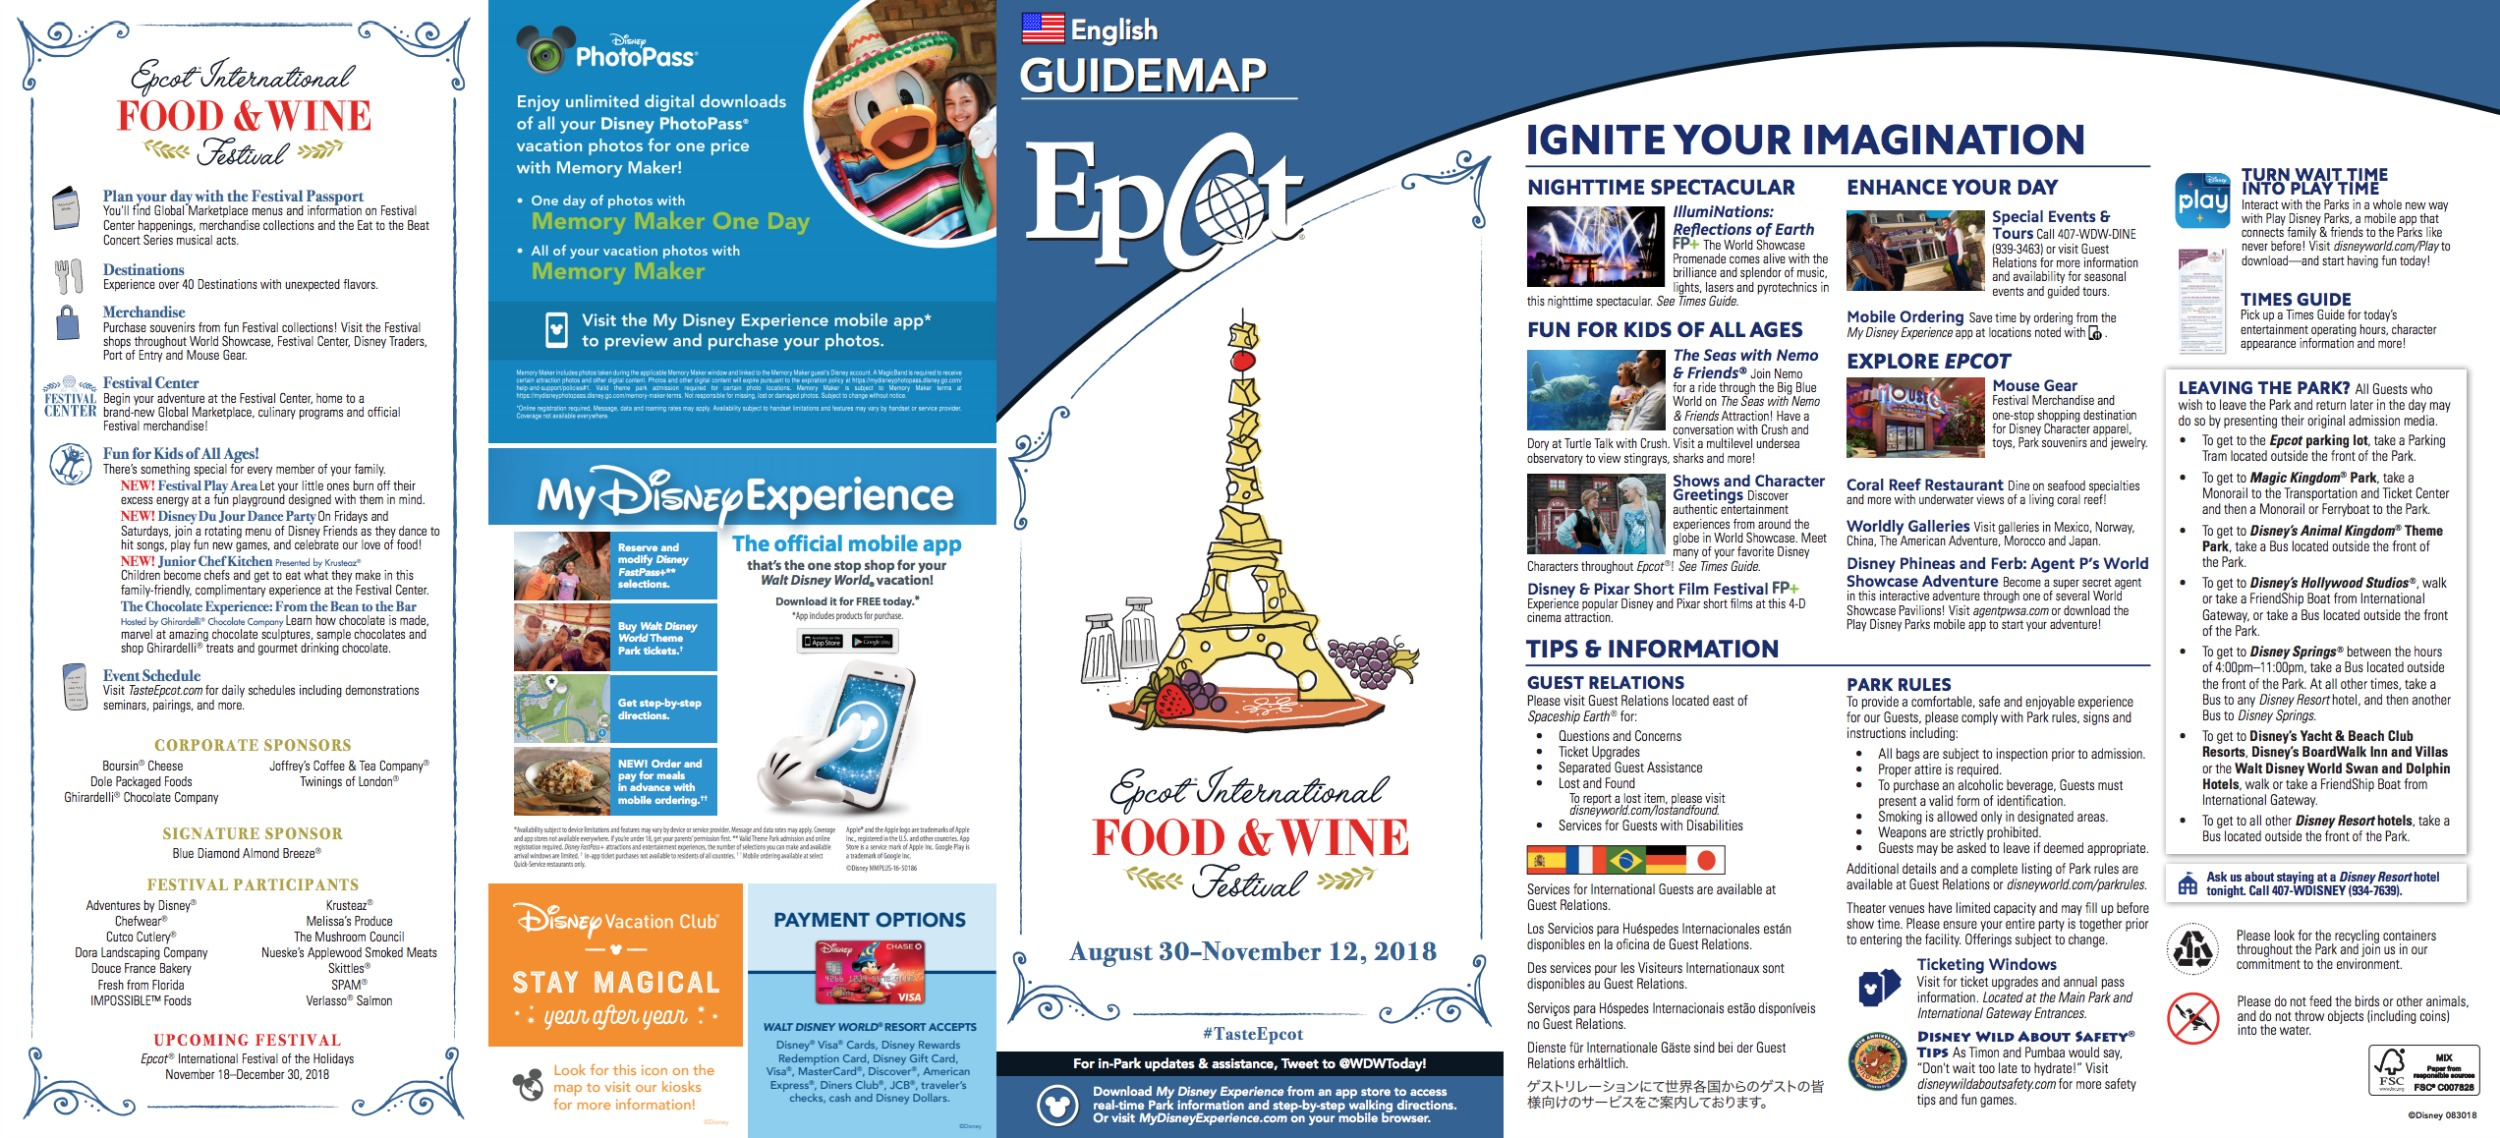 Epcot Food And Wine Festival 2018 New Arrival Voucher Map 100k Exp 31 Des 2017